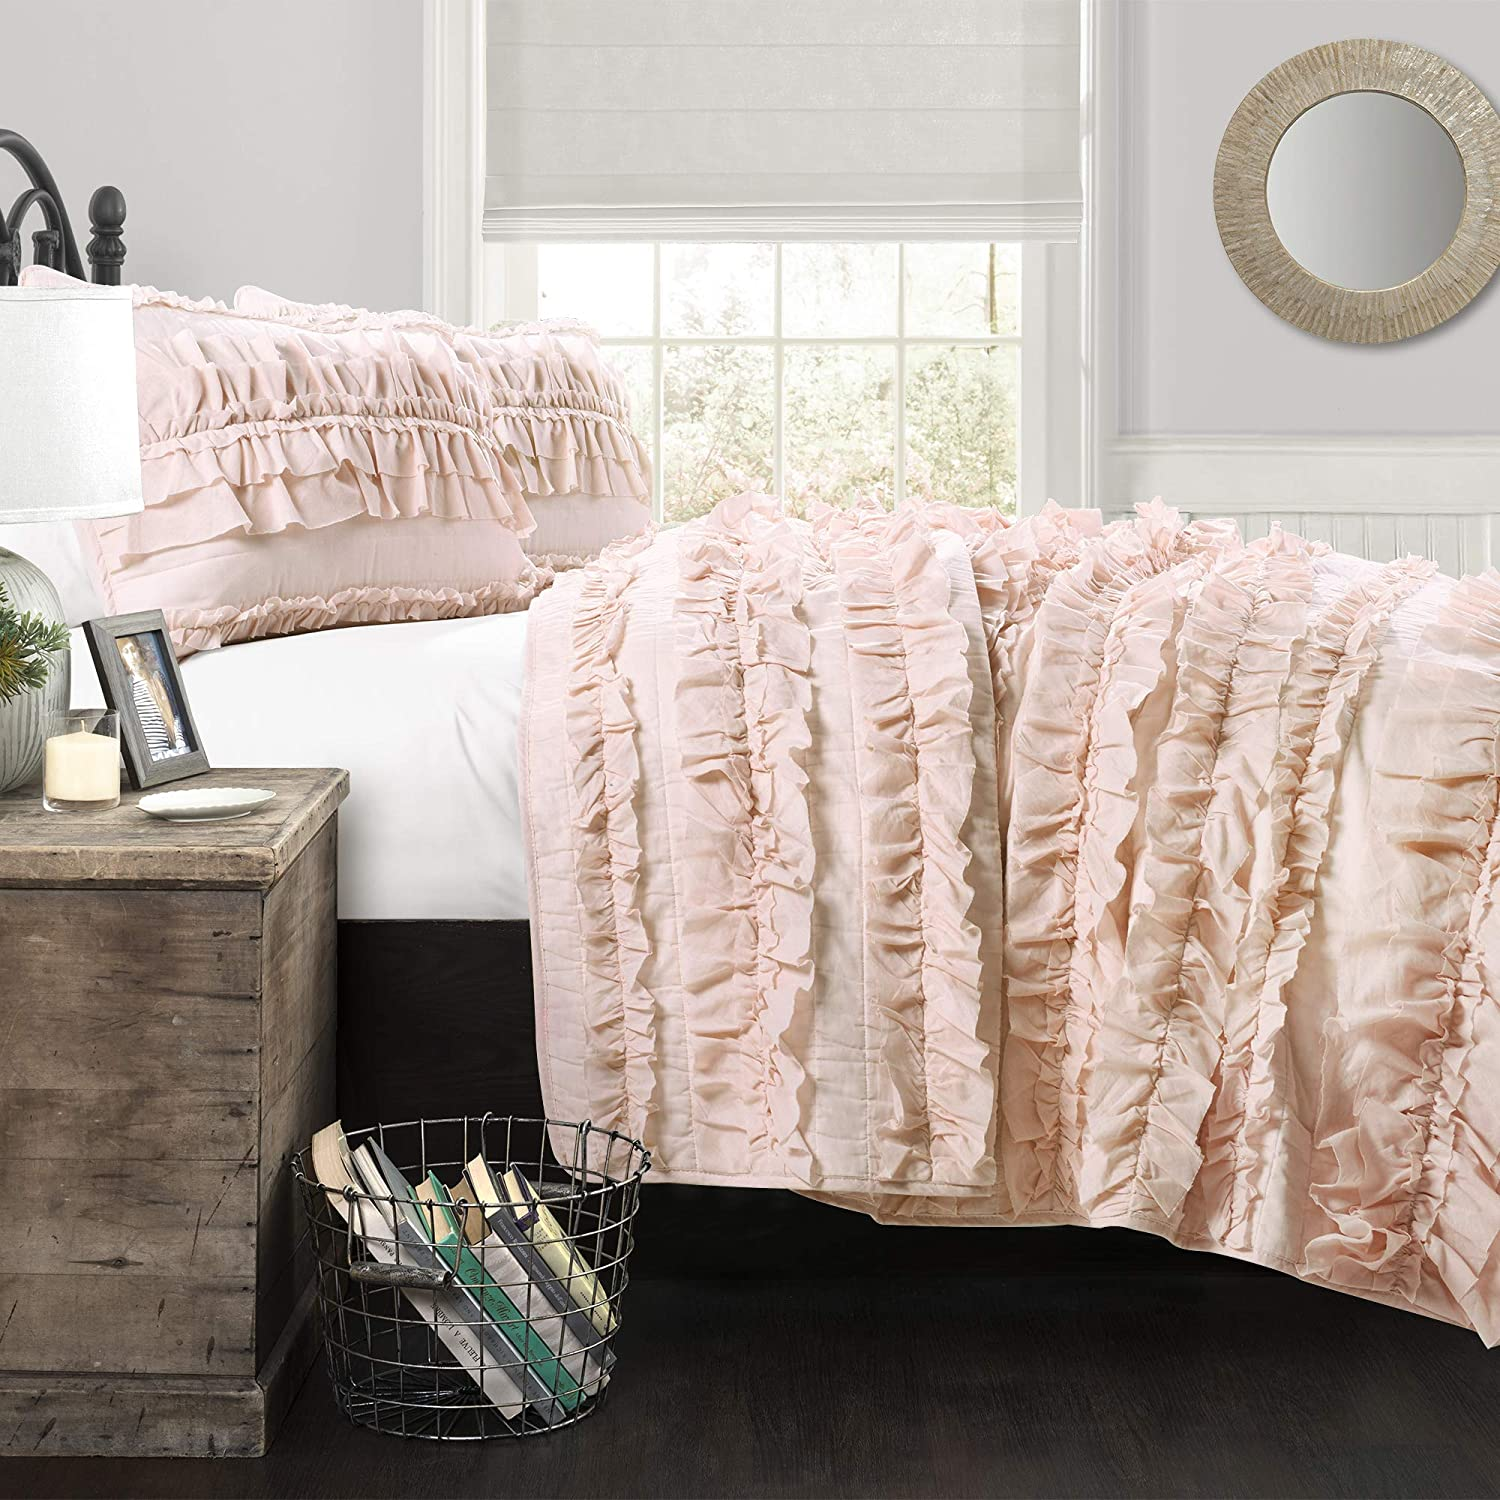 Lush Décor Belle 3 Piece Ruffled Quilt - Pink Blush - Full/Queen Quilt Set